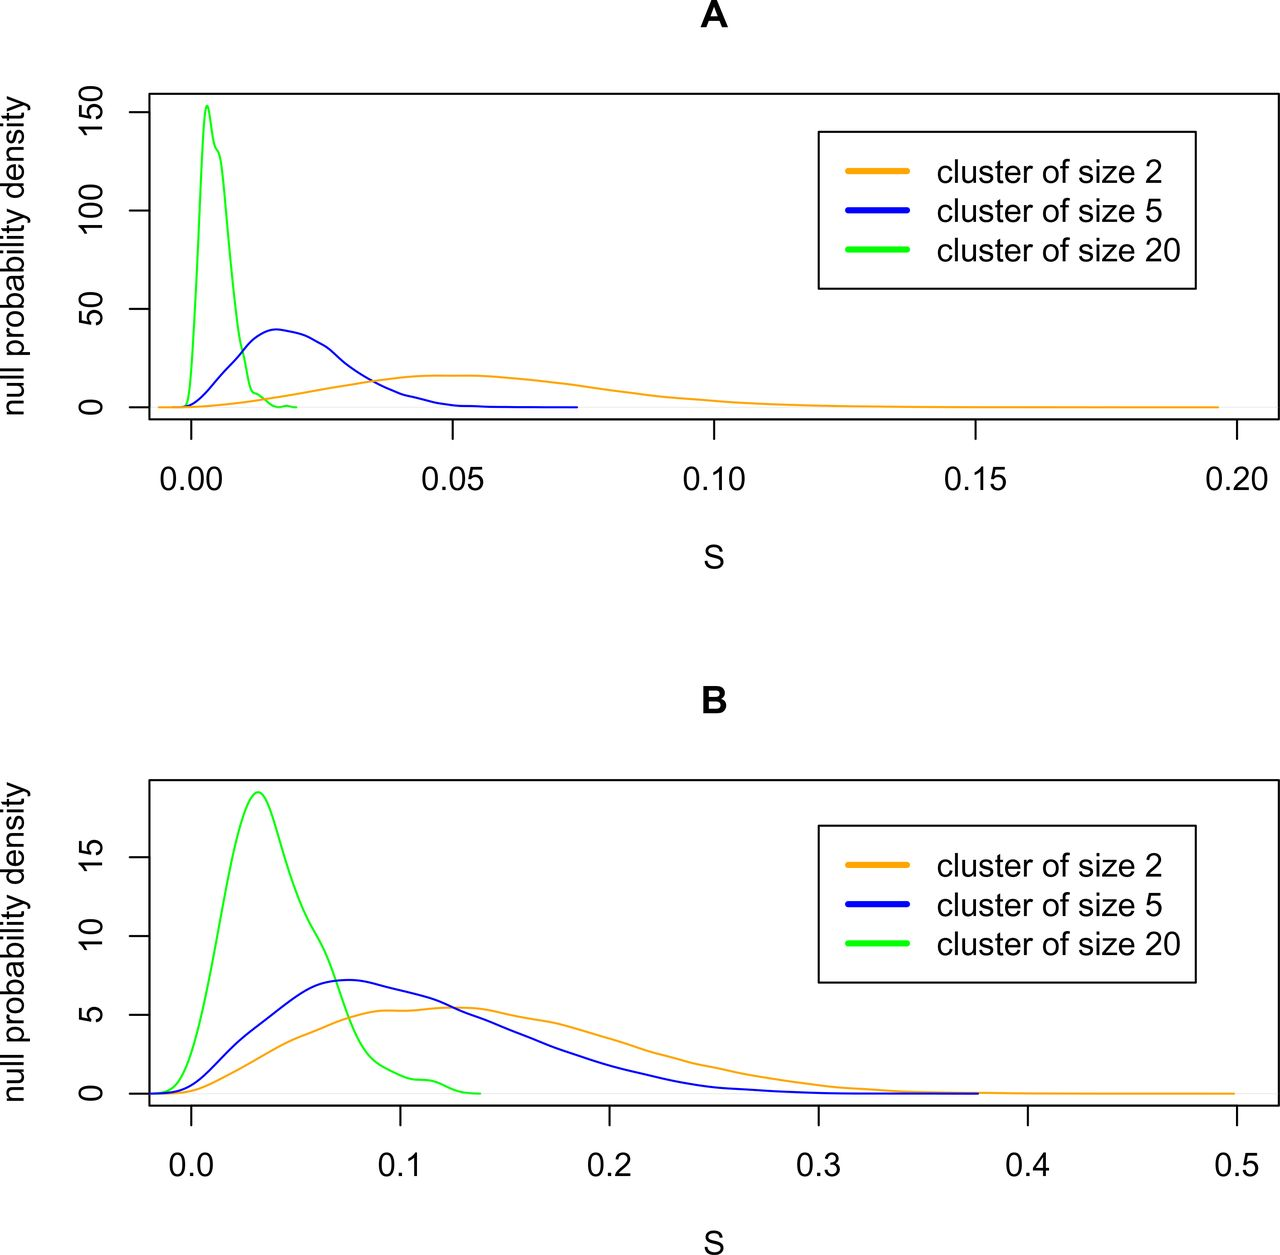 Significantly distinct branches of hierarchical trees: A framework